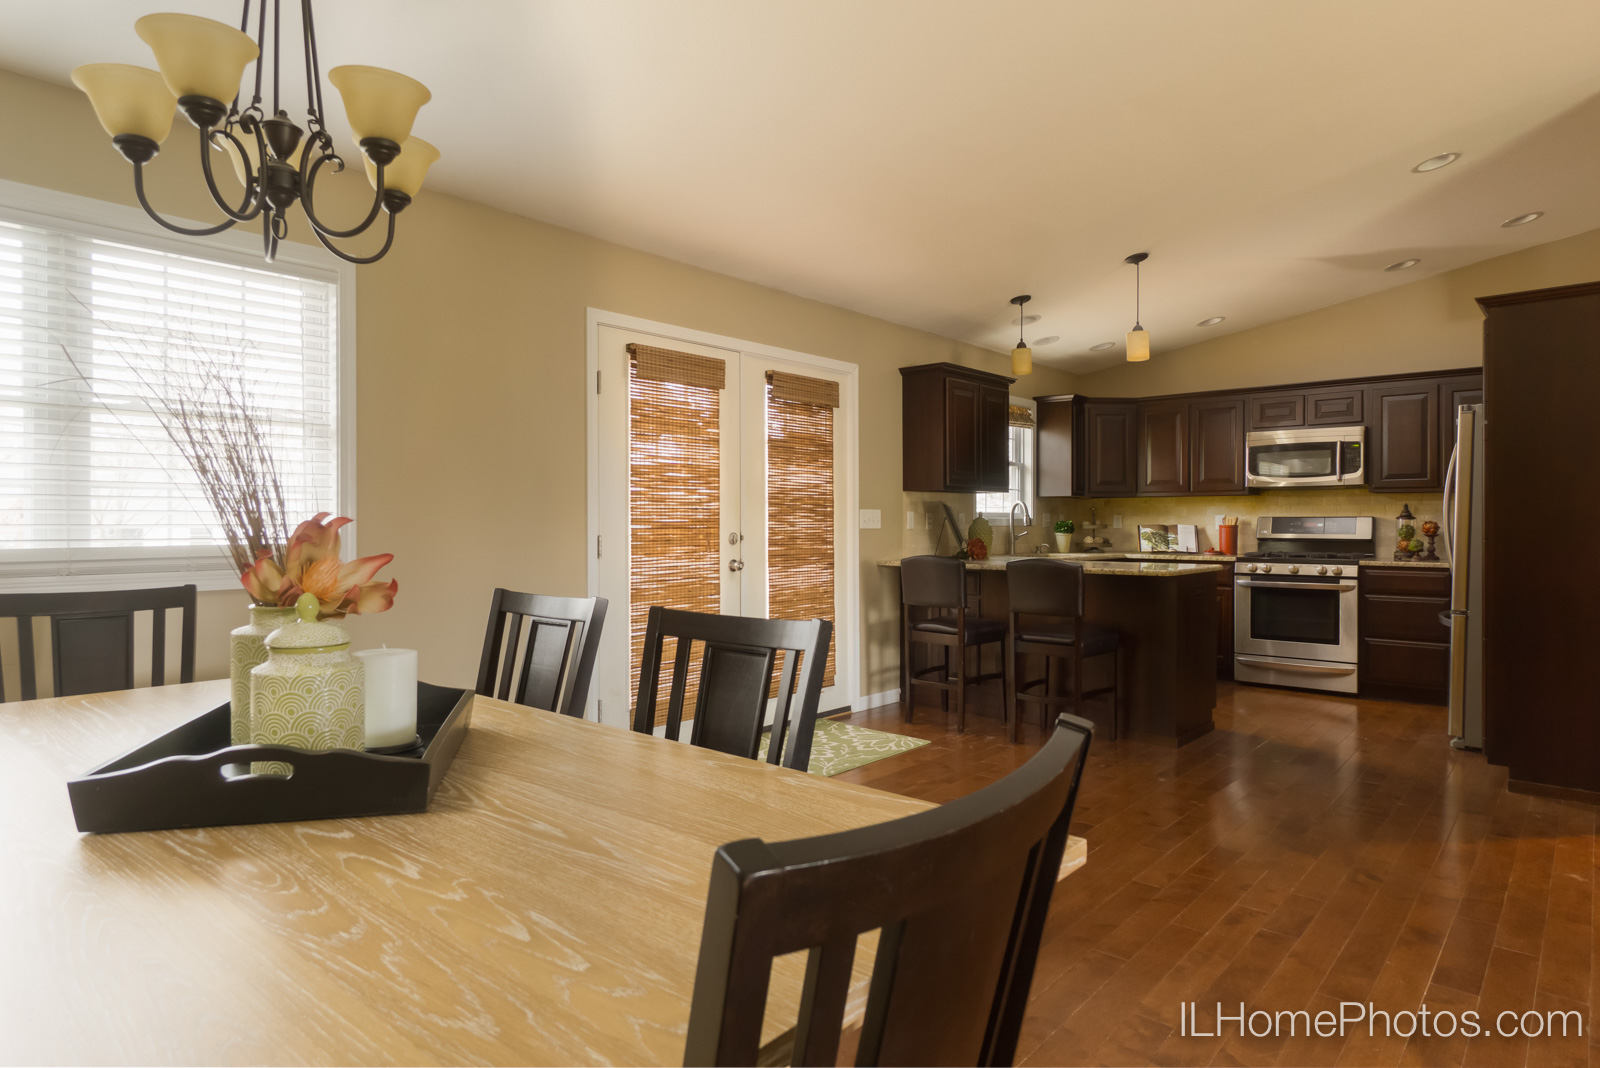 Interior dining room and kitchen photograph for real estate :: Illinois Home Photography by Michael Gowin, Lincoln, IL